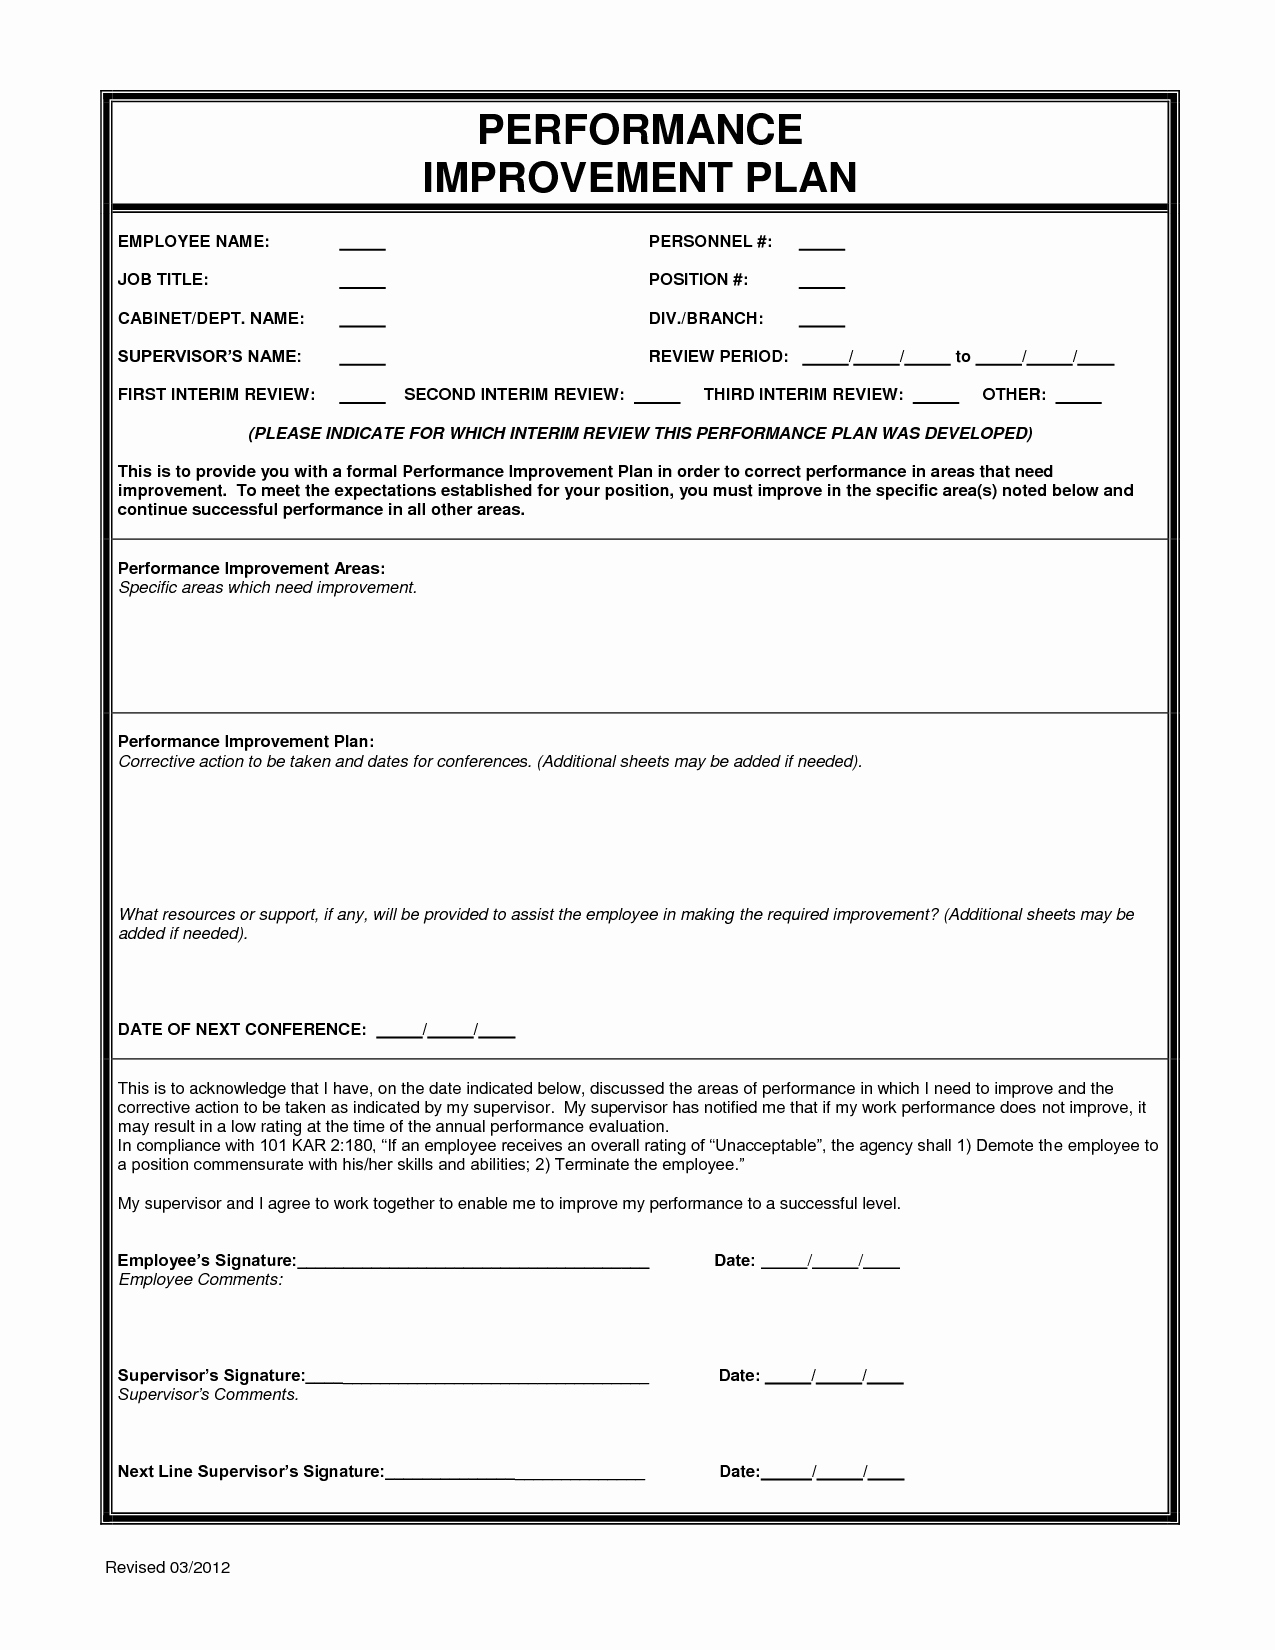 Employee Performance Improvement Plan Template Unique Blank Employee Performance Action Plan form and Template